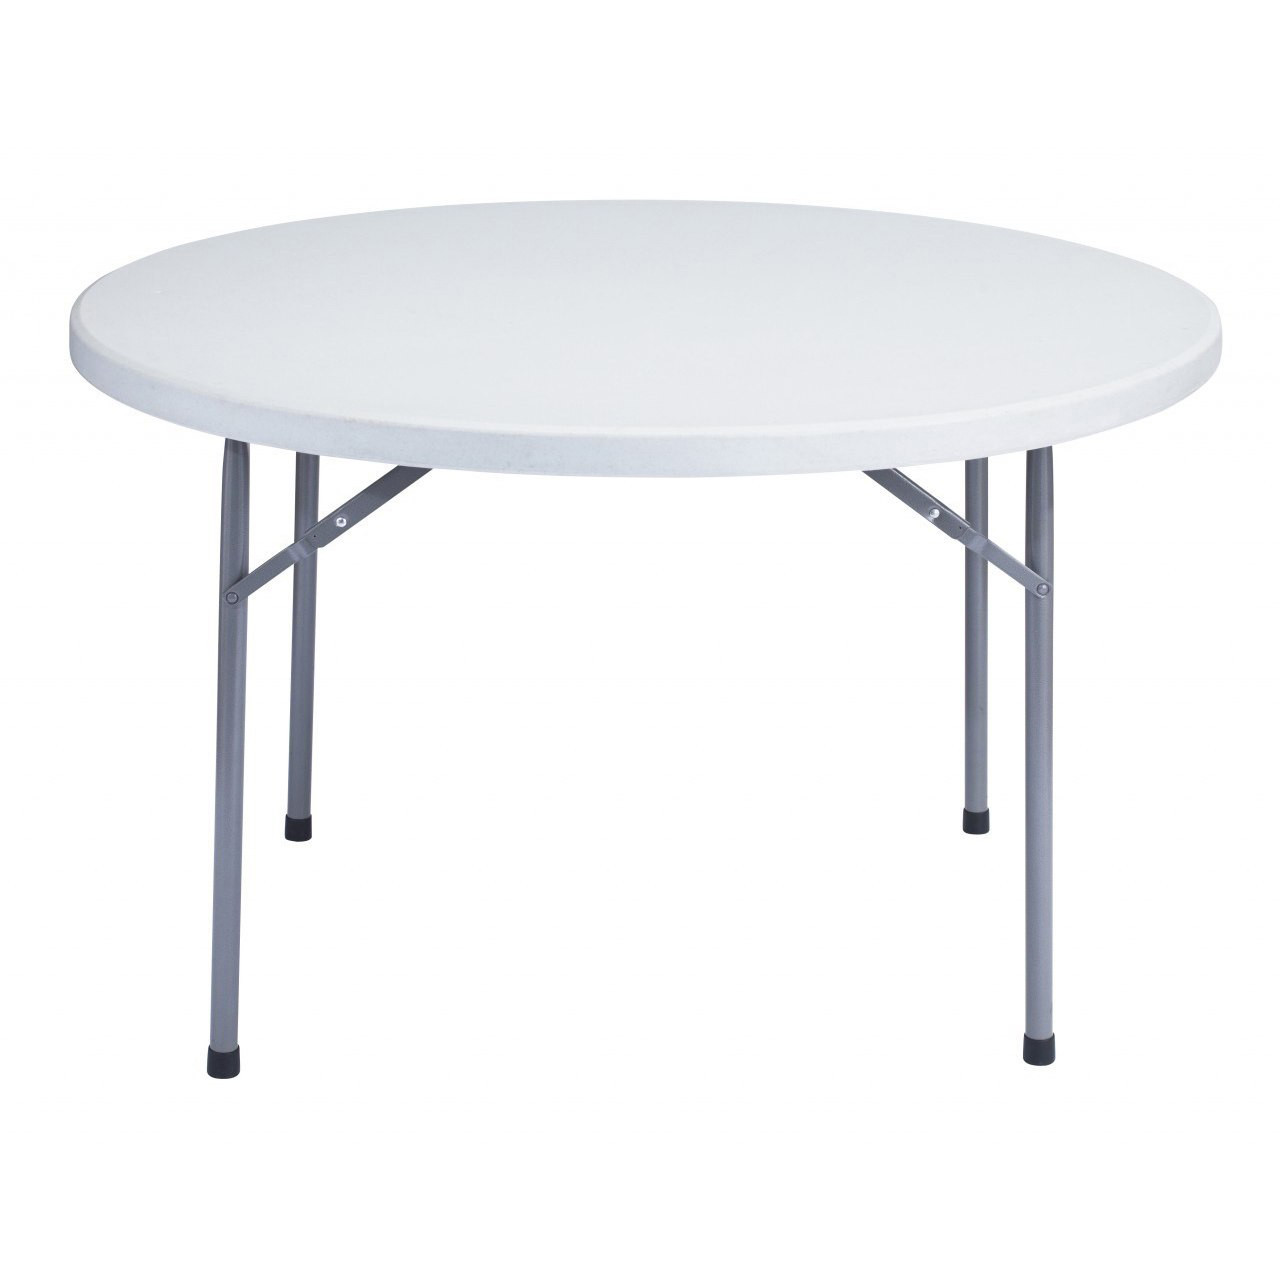 Round Plastic Tables Titan Pro 4 Ft Round Plastic Folding Table Solid One Piece Top Locking Steel Frame